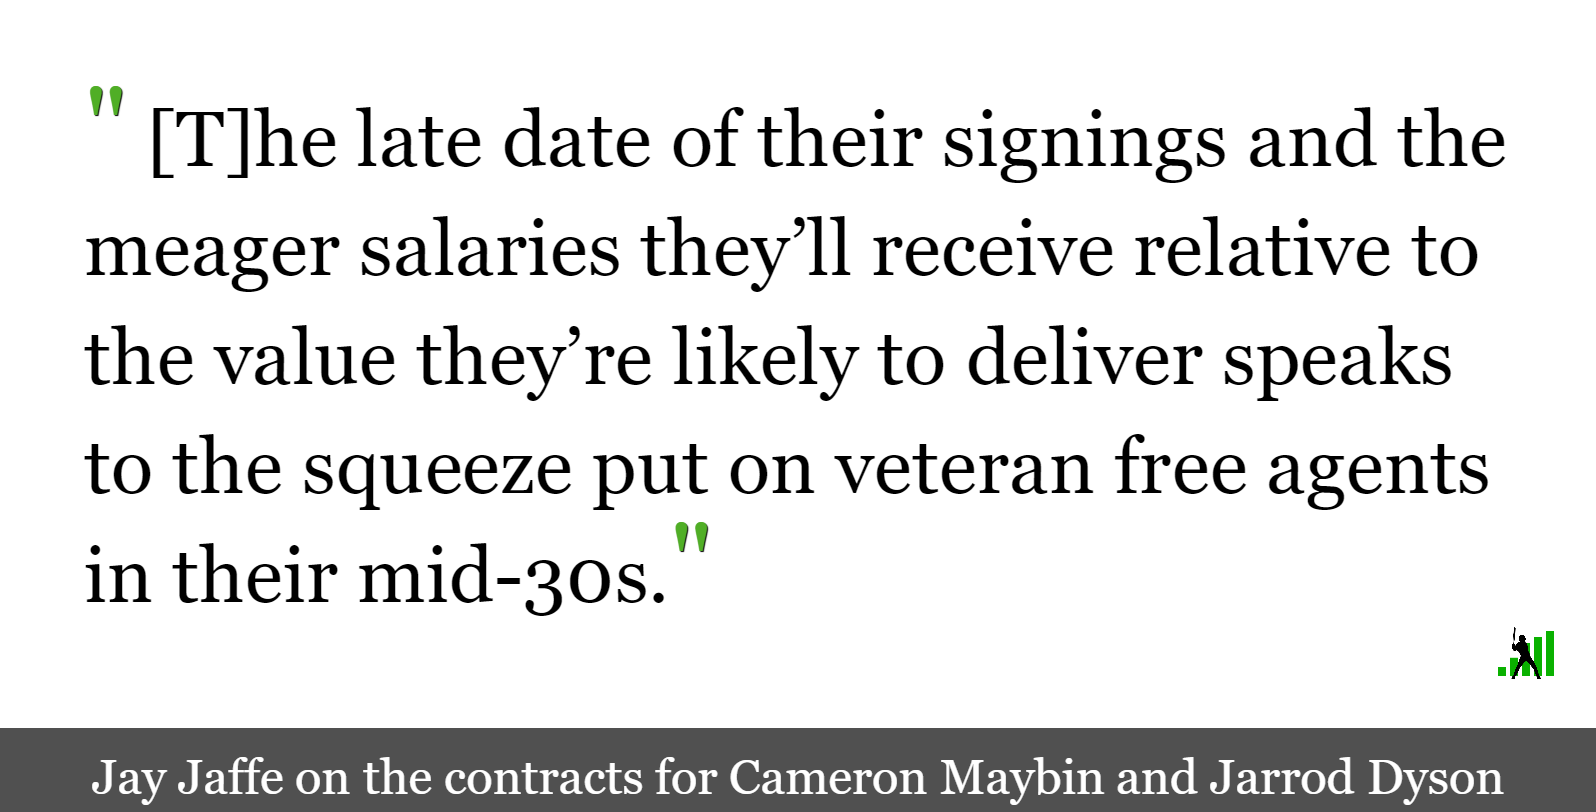 Veteran Outfielders Land Jobs With Potential Cellar Dwellers